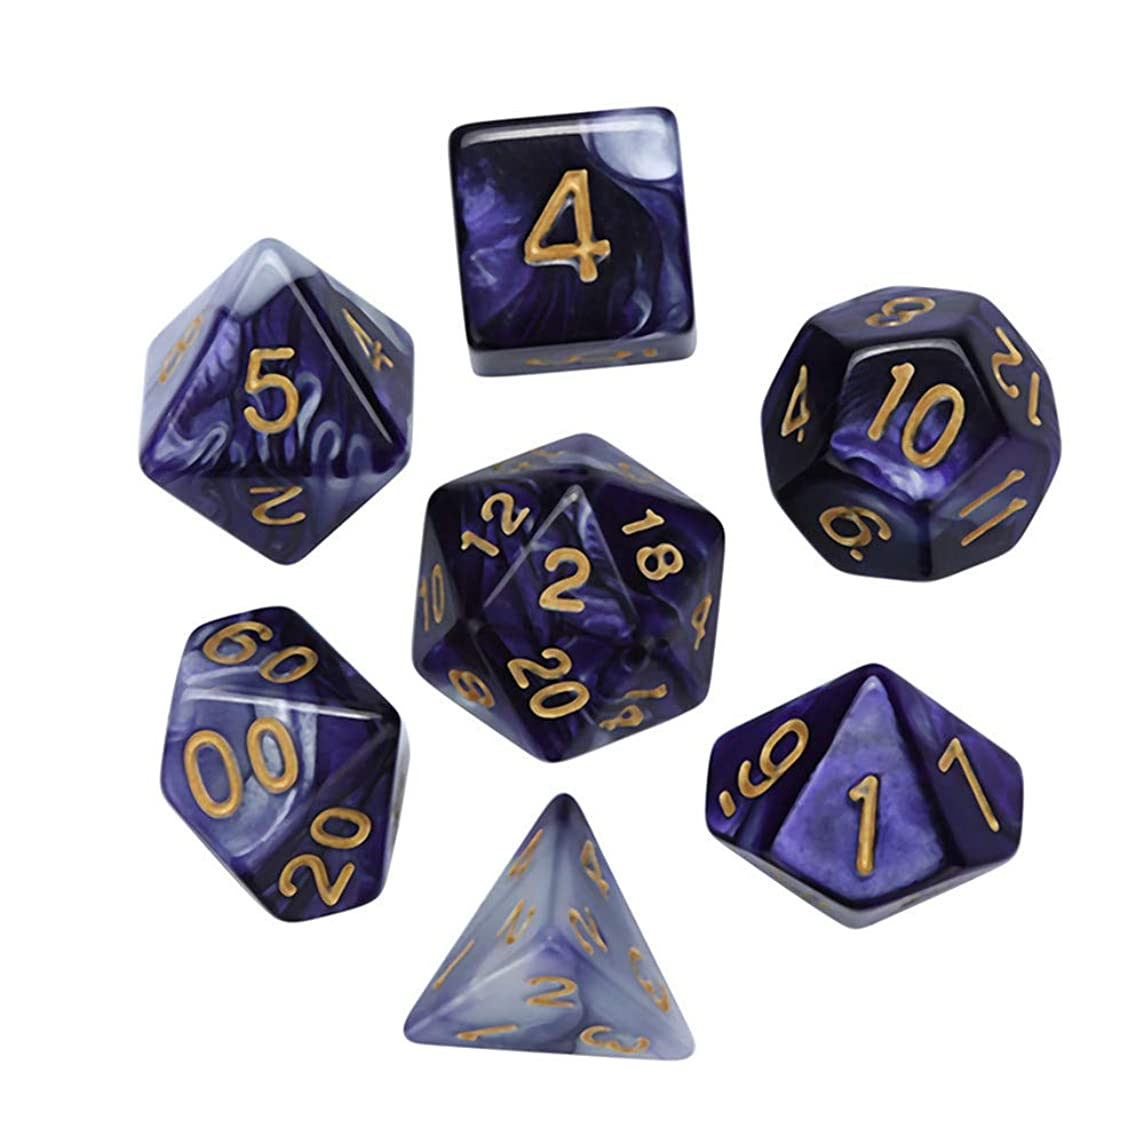 Huaa Polyhedral DND Dice Sets for Dungeons Dragons(D&D) Role Playing Game(RPG),Table Game Translucent Sparkle Dice (A, Free Size)